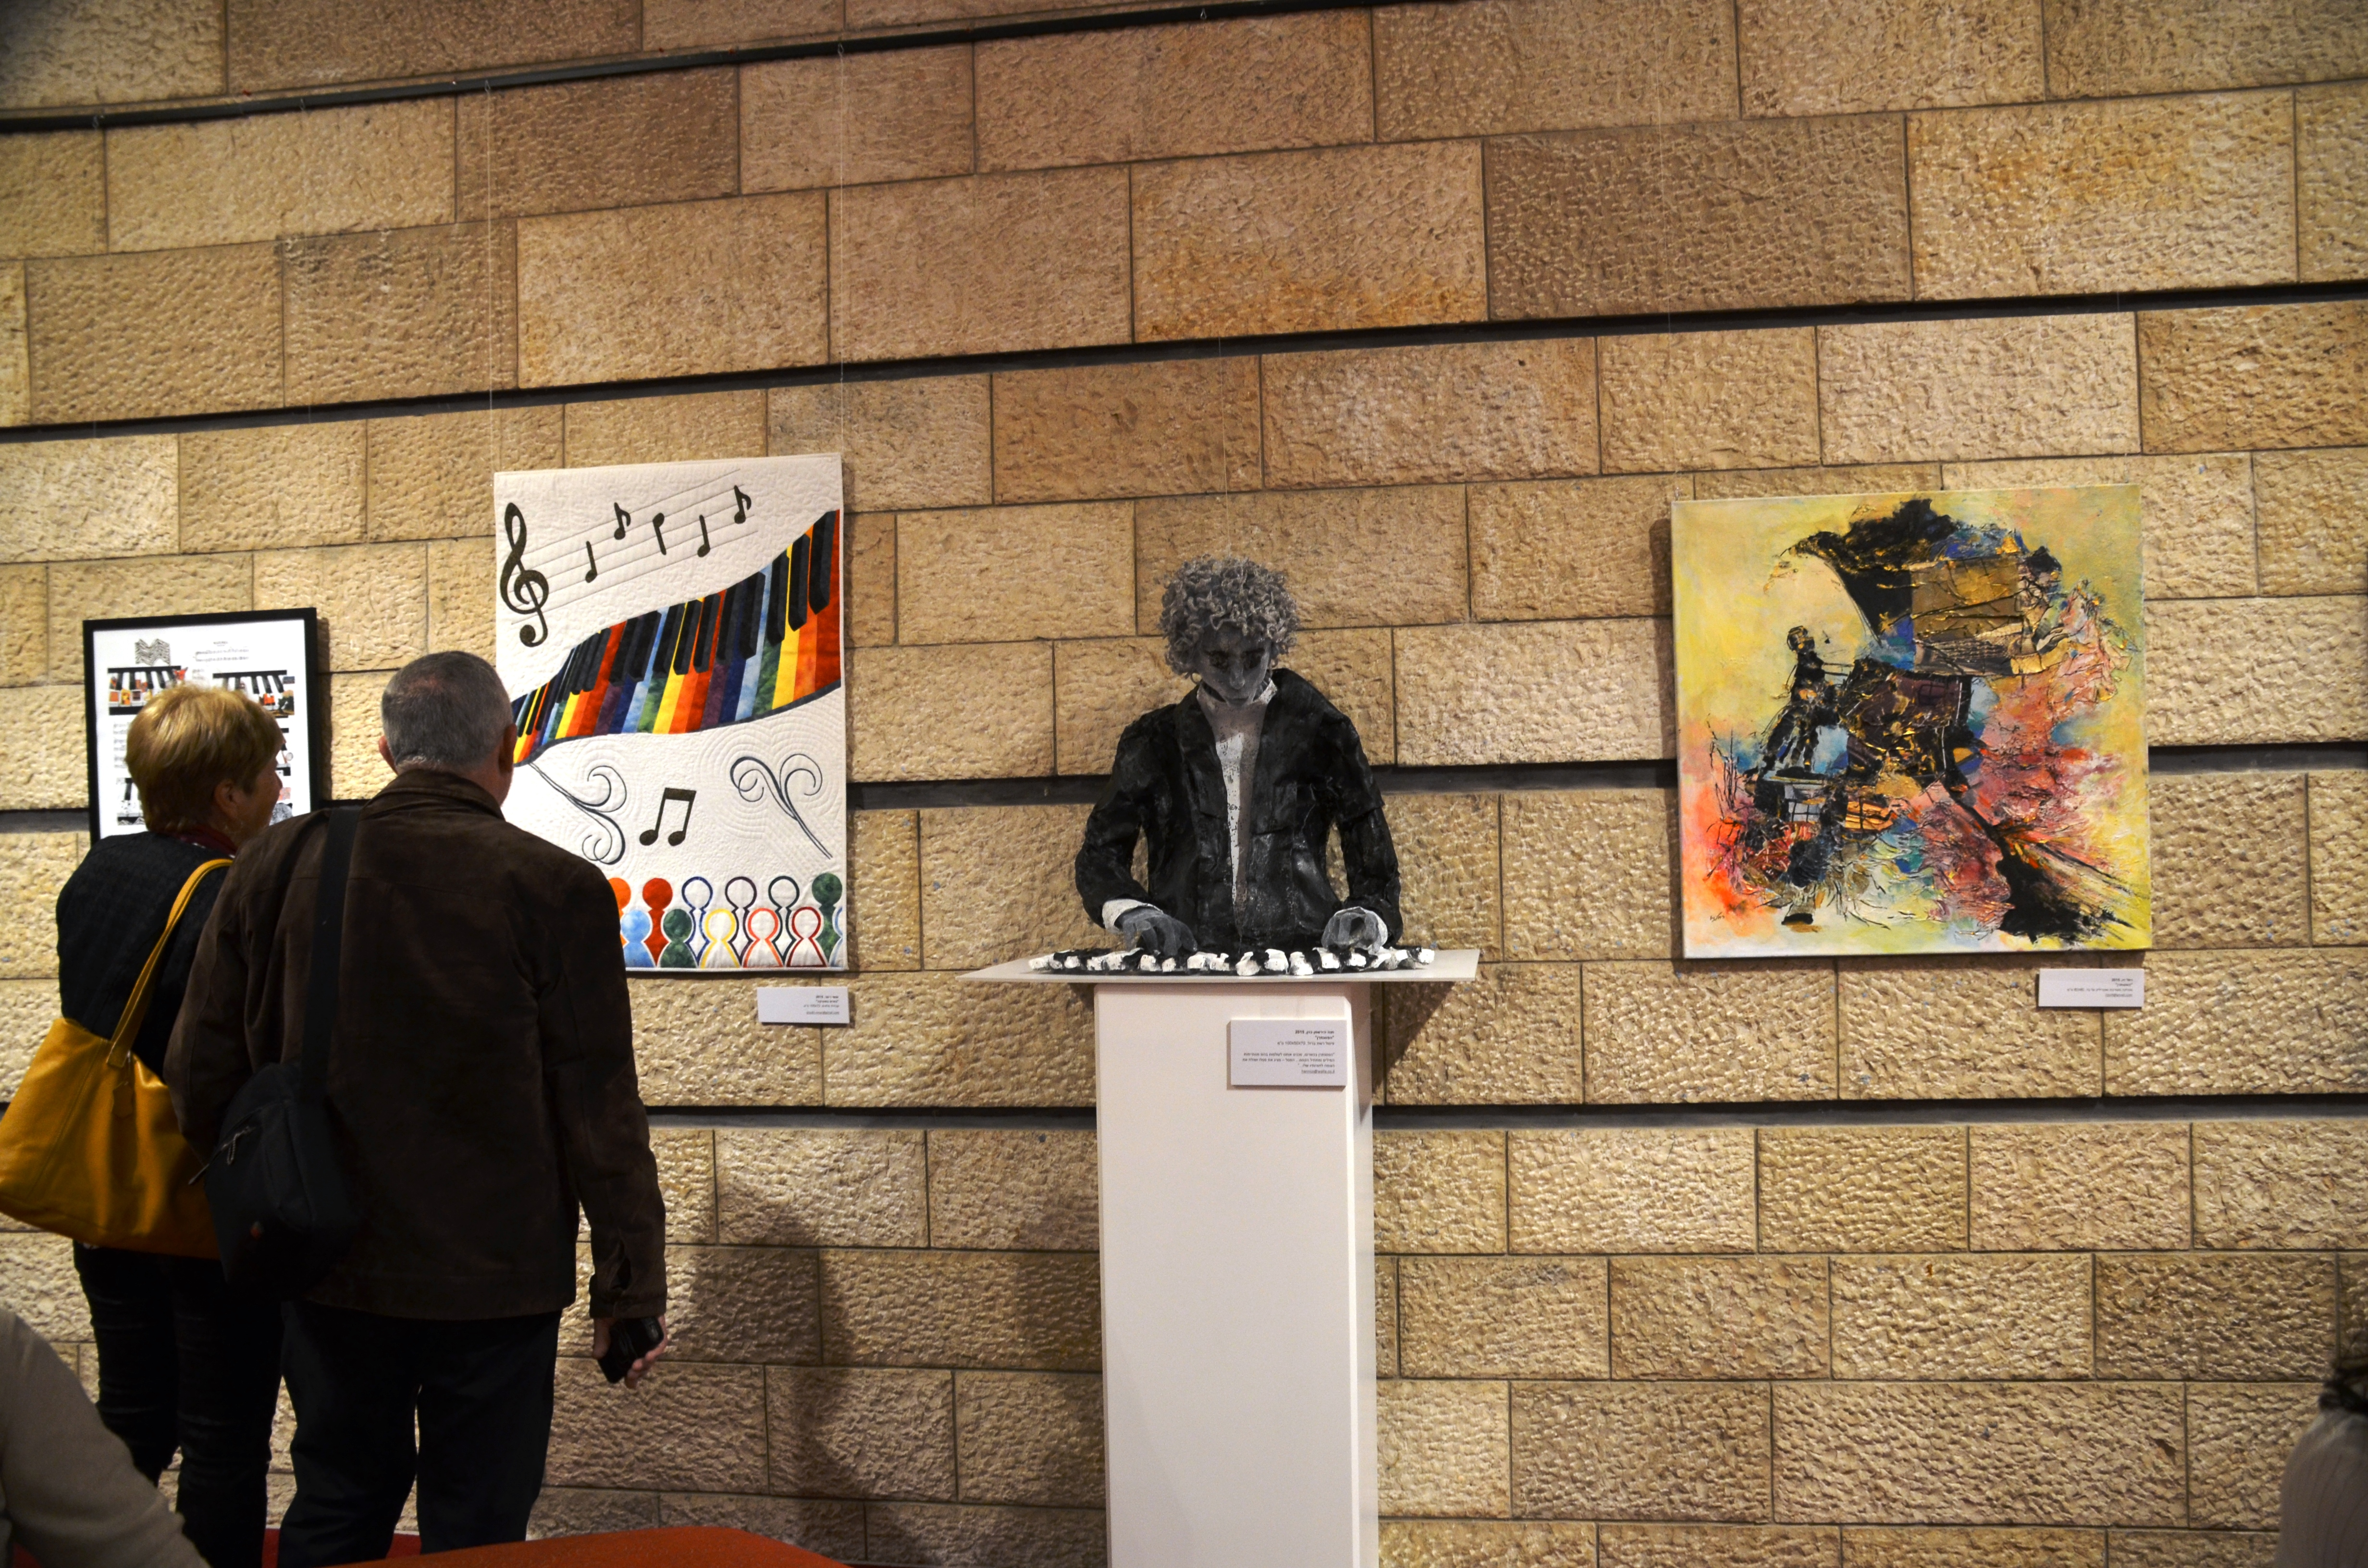 lobby of Jerusalem Theatre art display